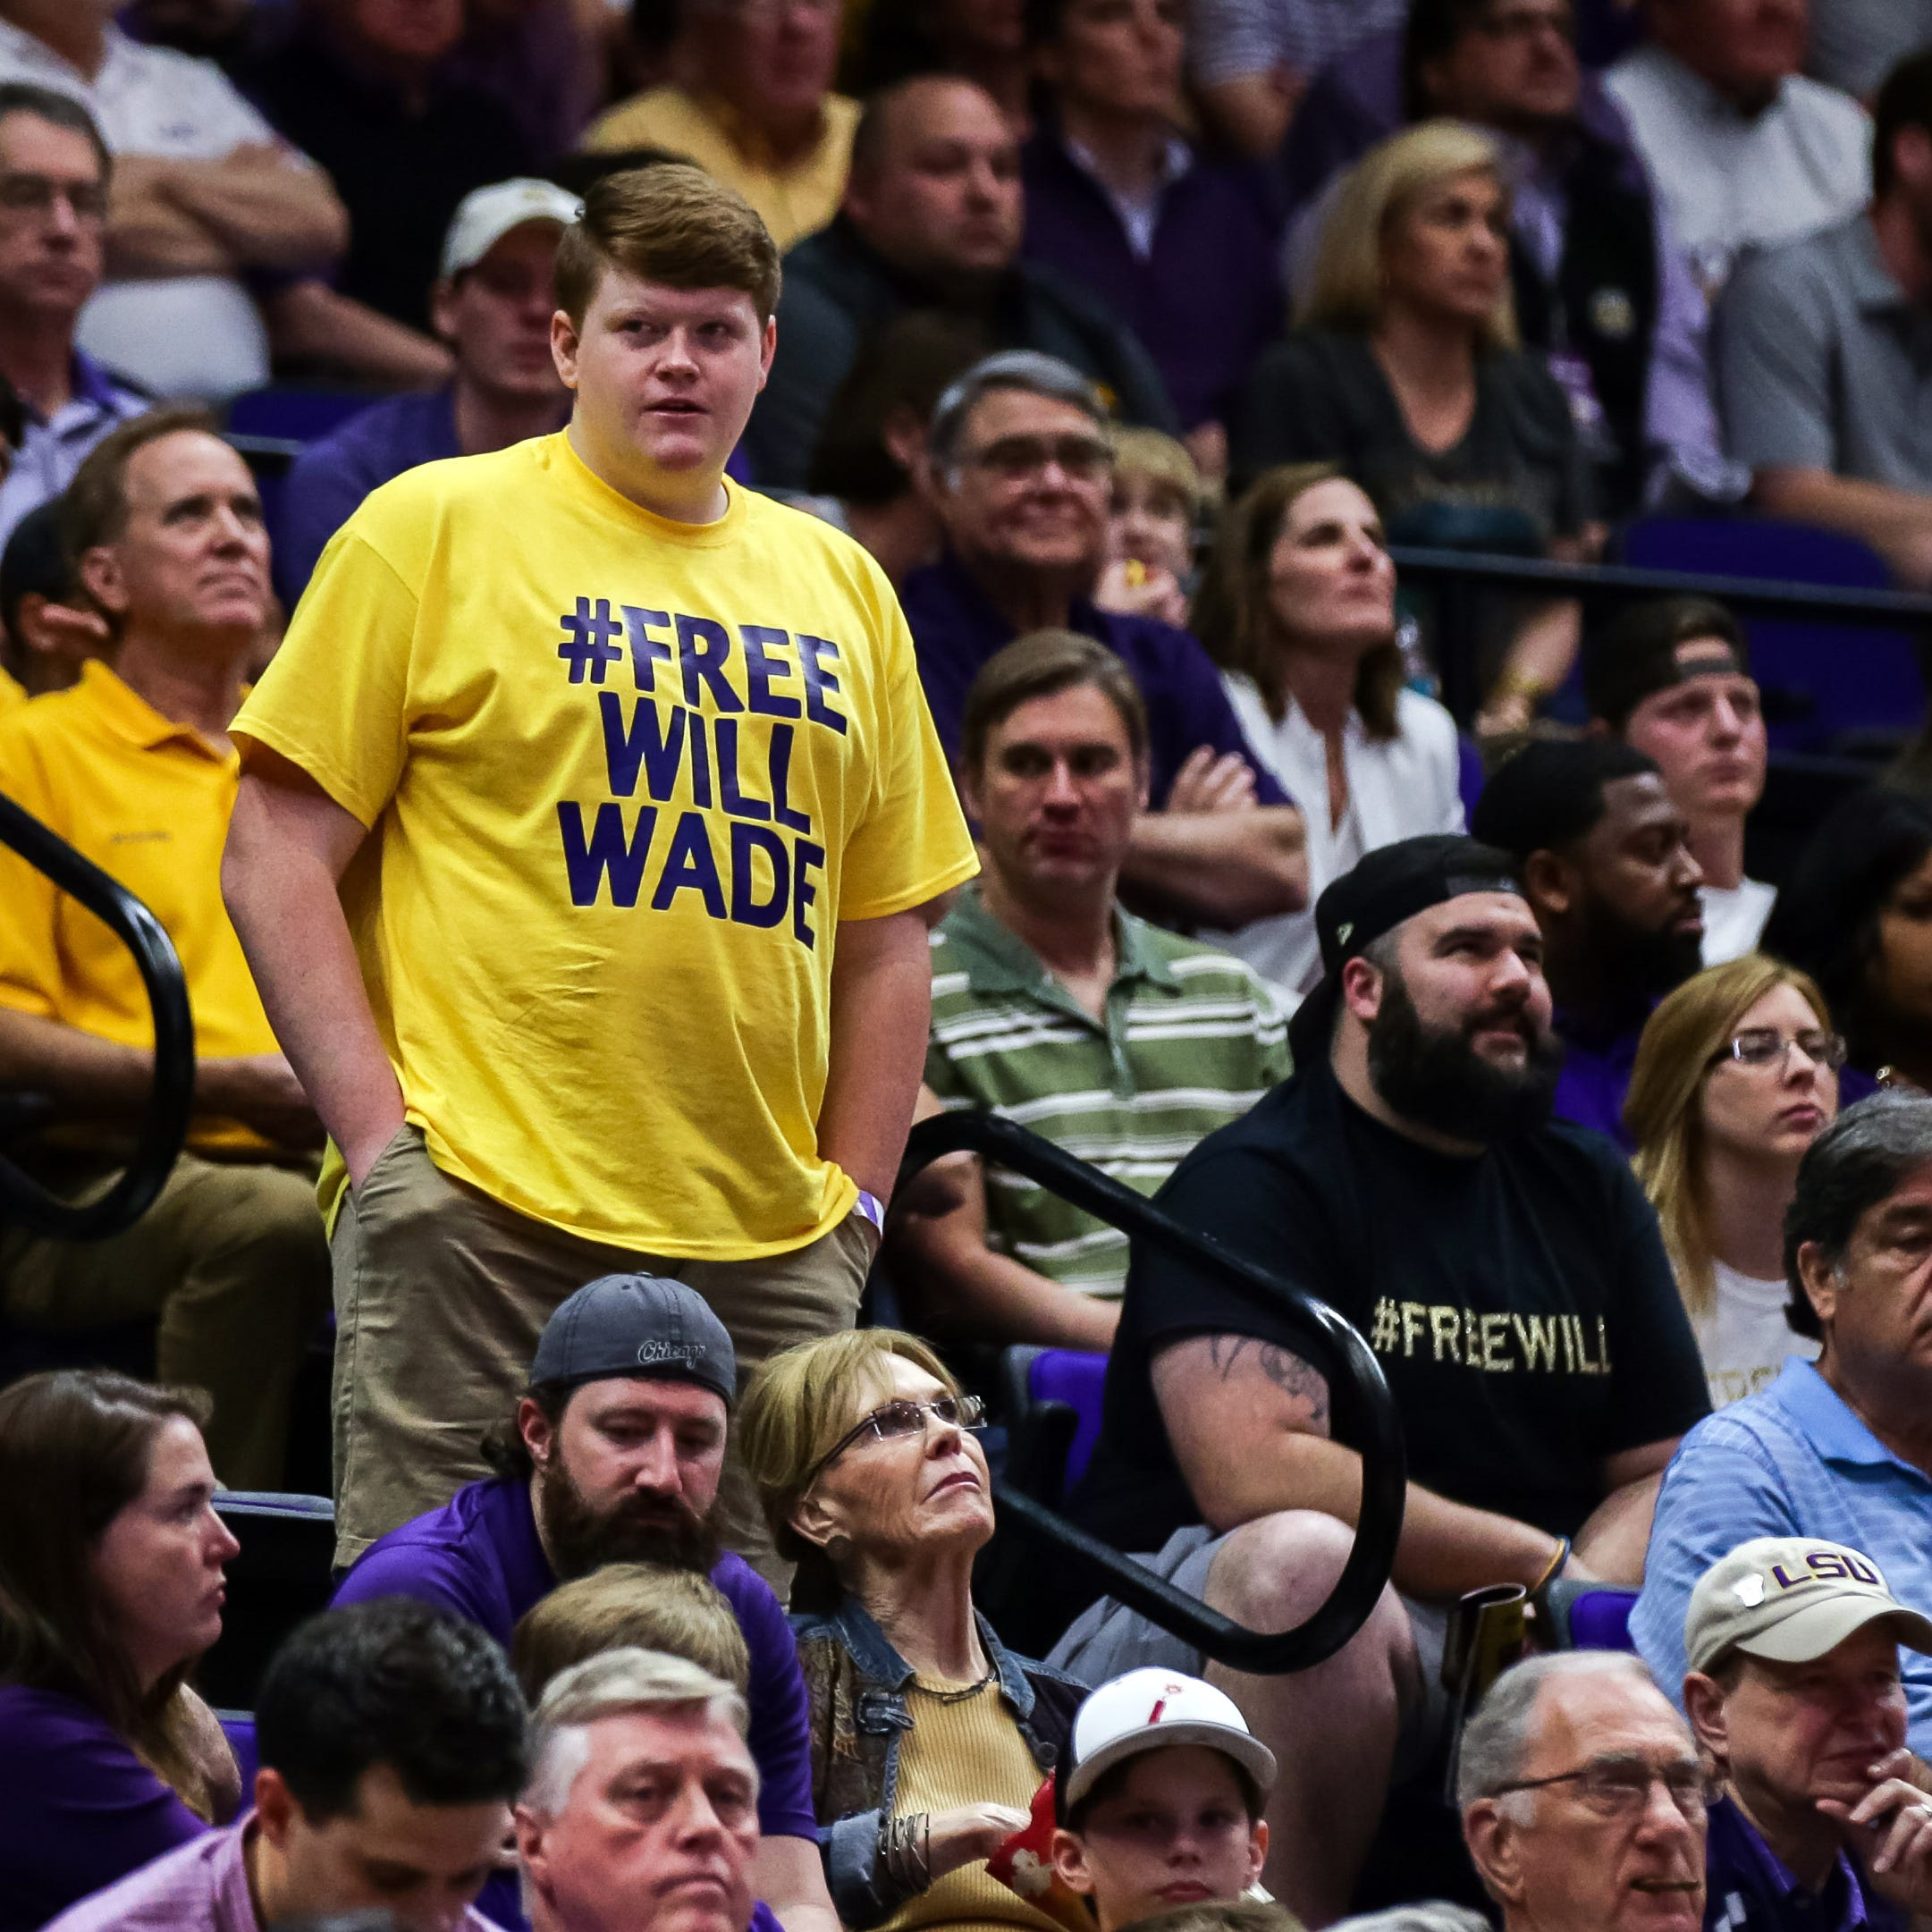 See LSU basketball coach Will Wade get fan support on signs, shirts vs. Vanderbilt